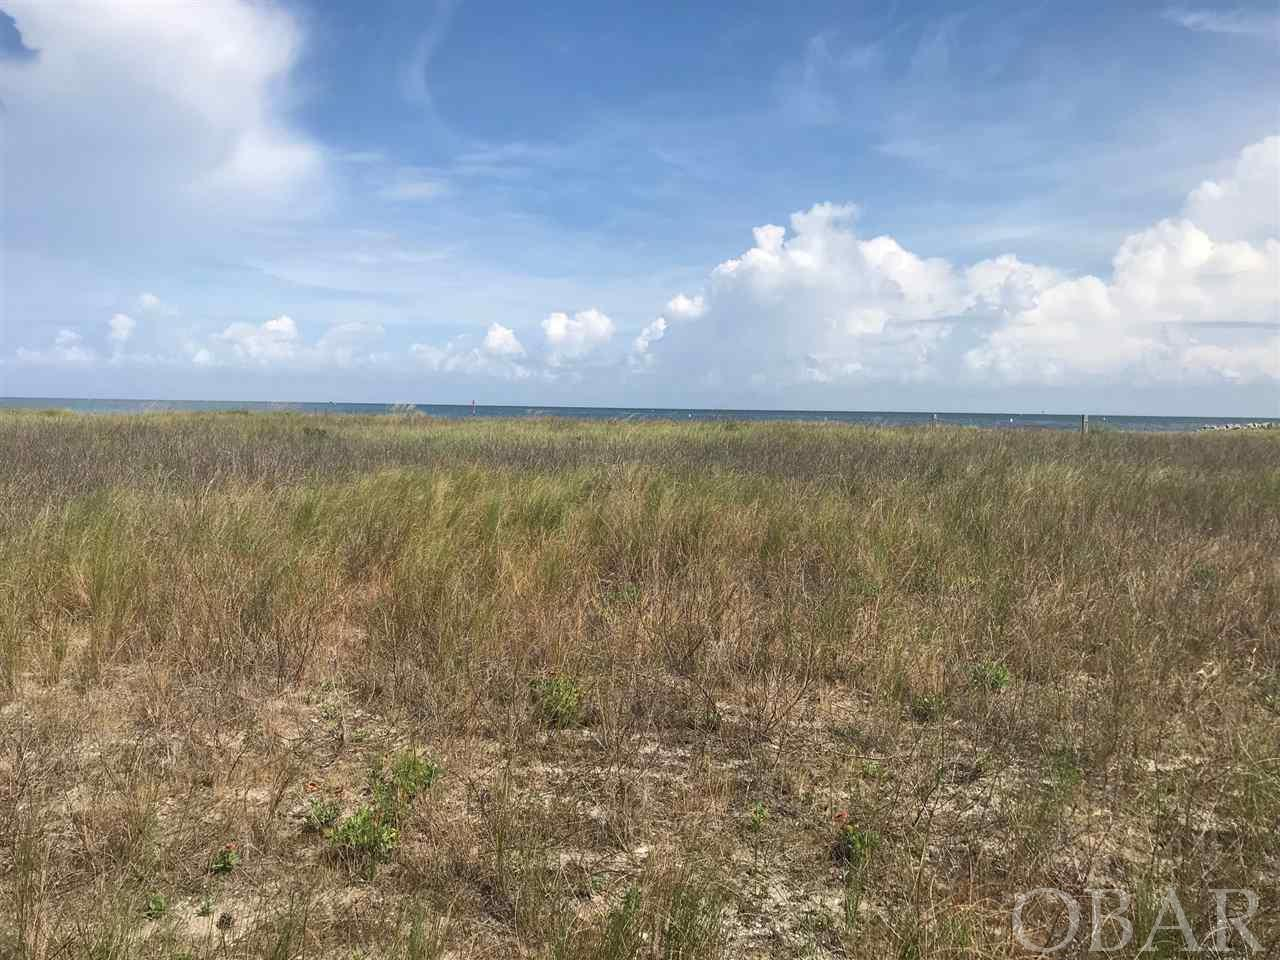 58158 Hatteras Harbor Court,Hatteras,NC 27943,Lots/land,Hatteras Harbor Court,75320